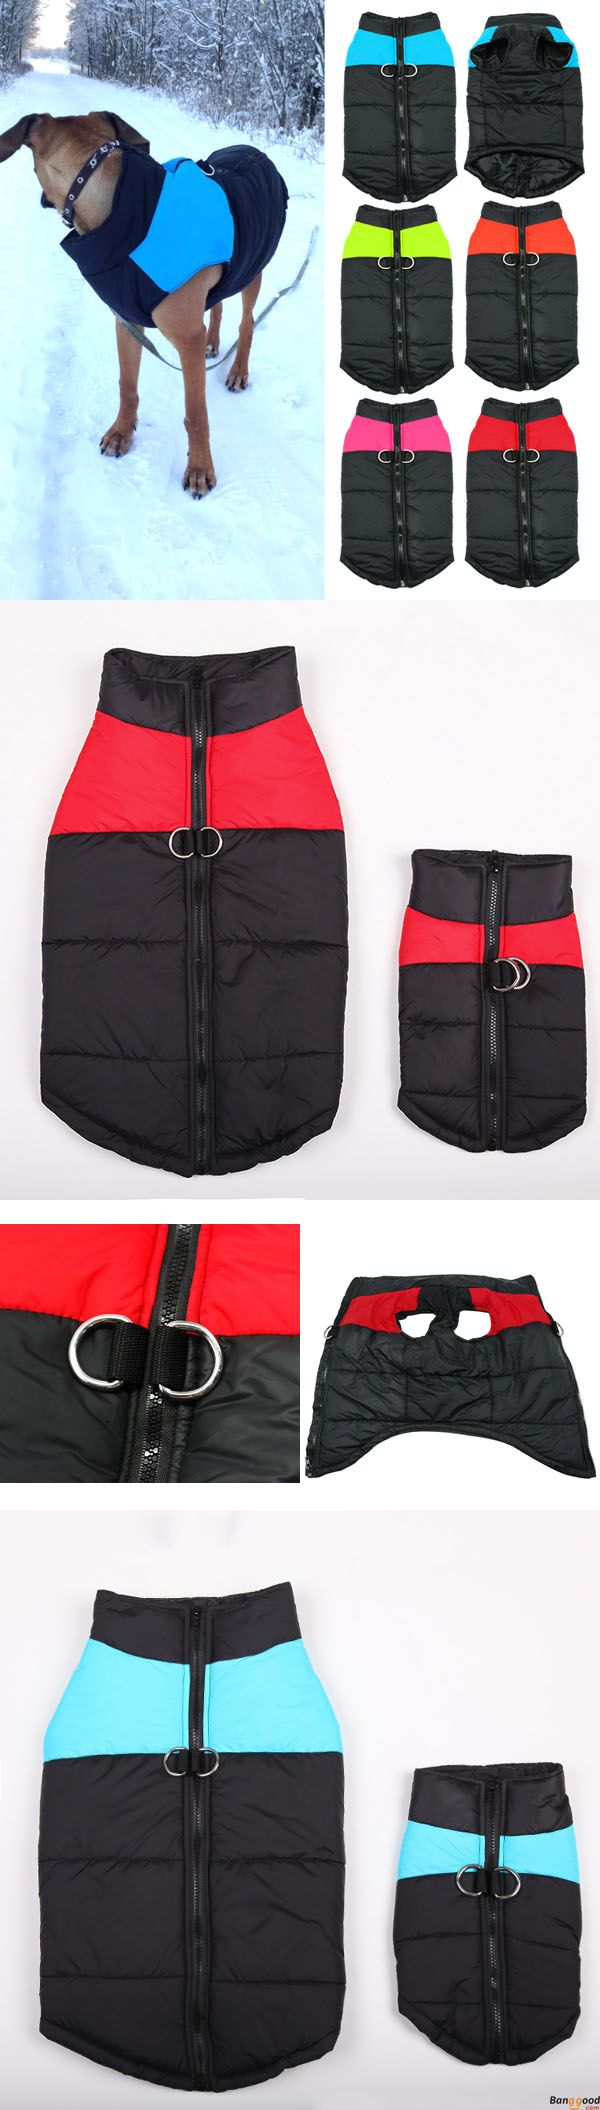 US$6.99+ Free Shipping. Pet Dog Winter Waterproof Clothes Coat Jacket Puppy Warm Soft Clothes Small To Large. Size from S~5XL. Shop at banggood with super affordable price.